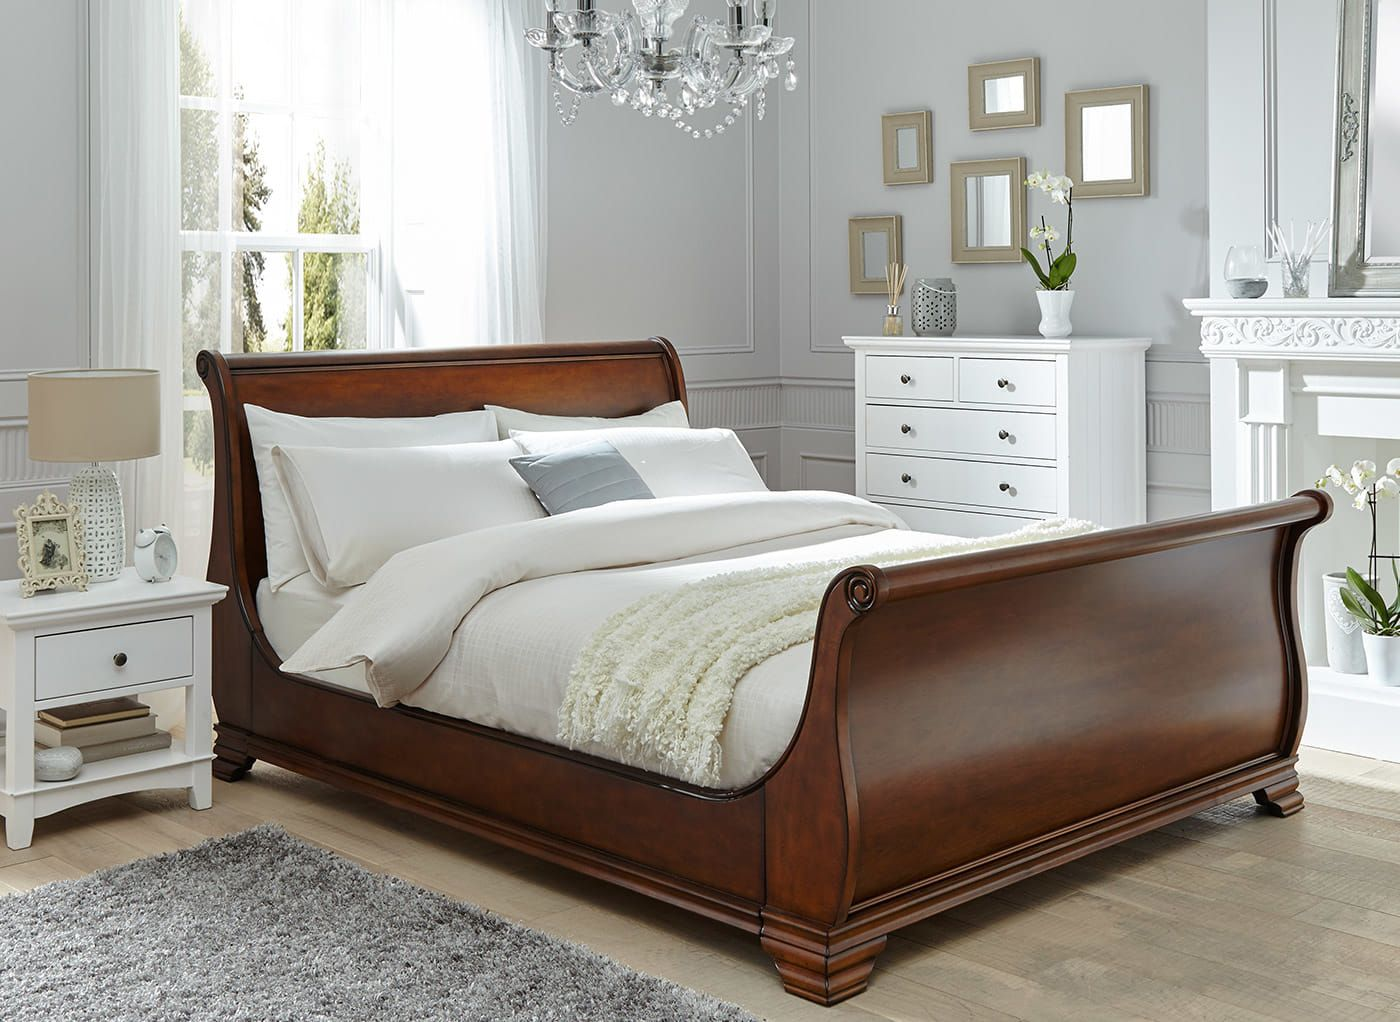 orleans walnut wooden bed frame